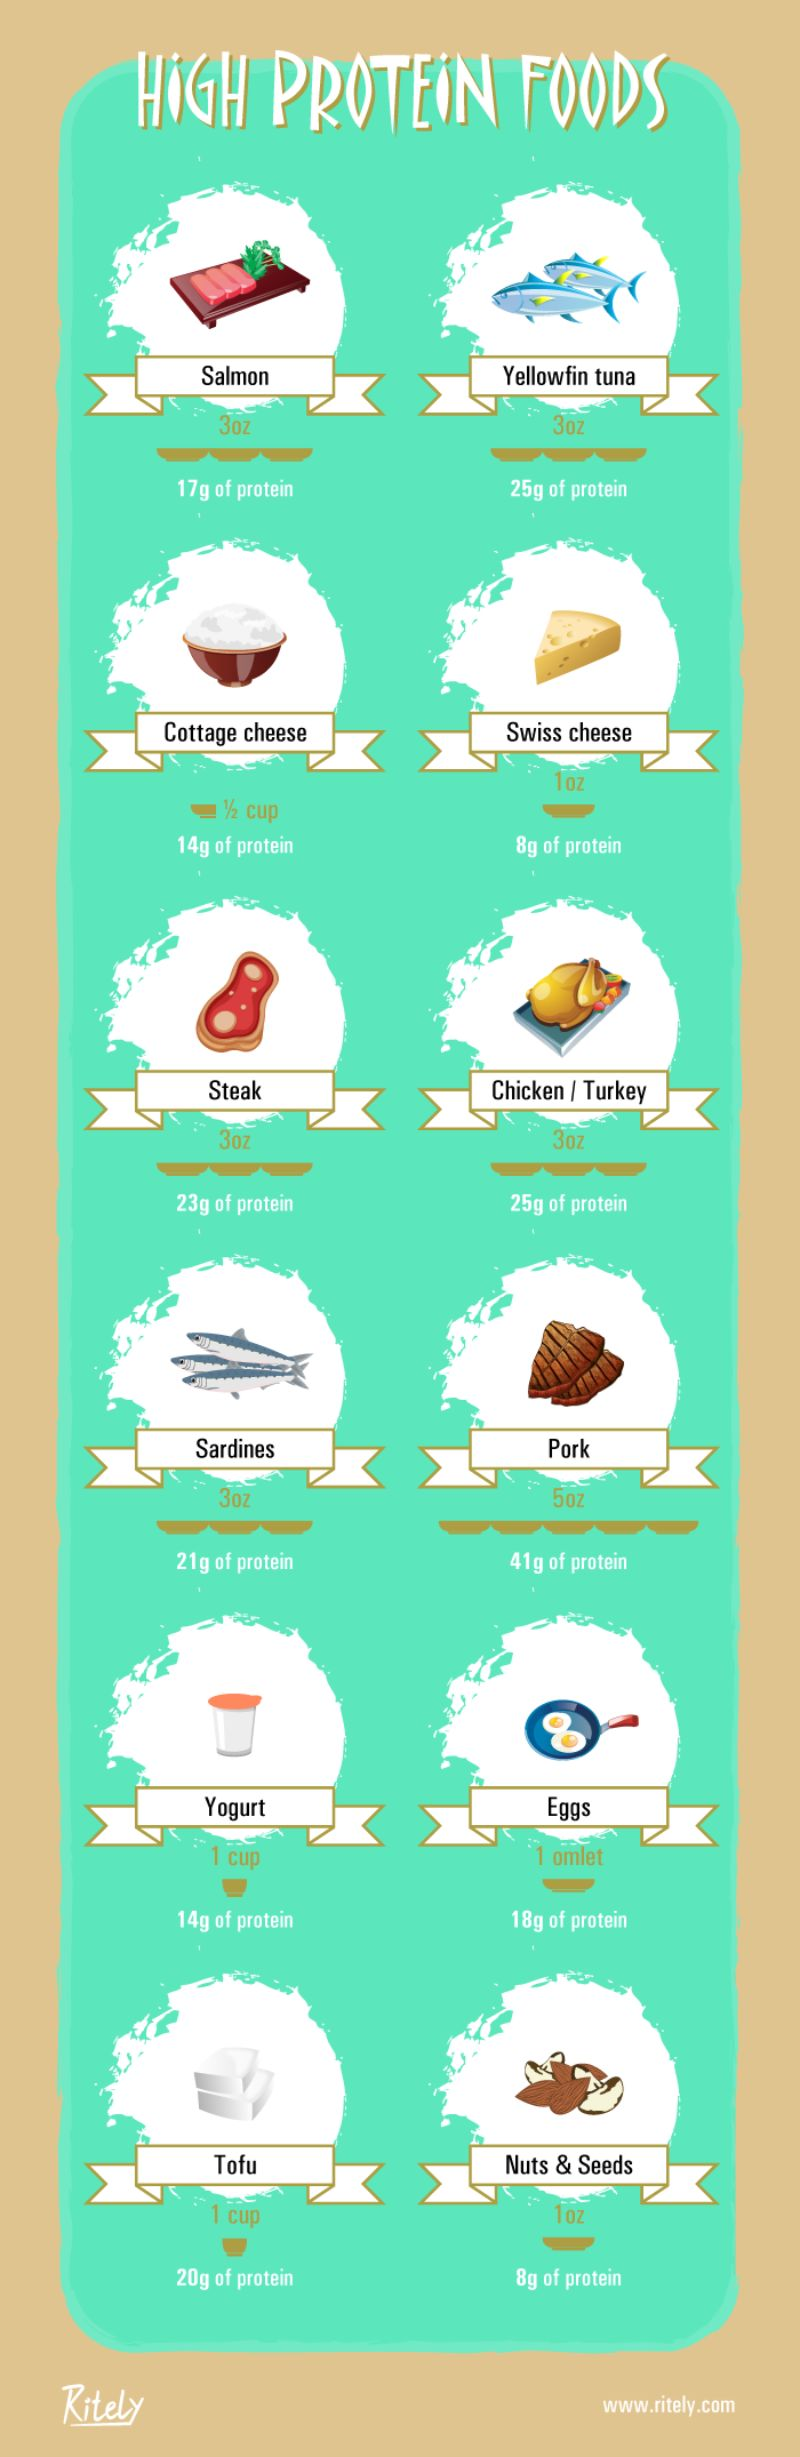 Your Ultimate Guide to High Protein Foods